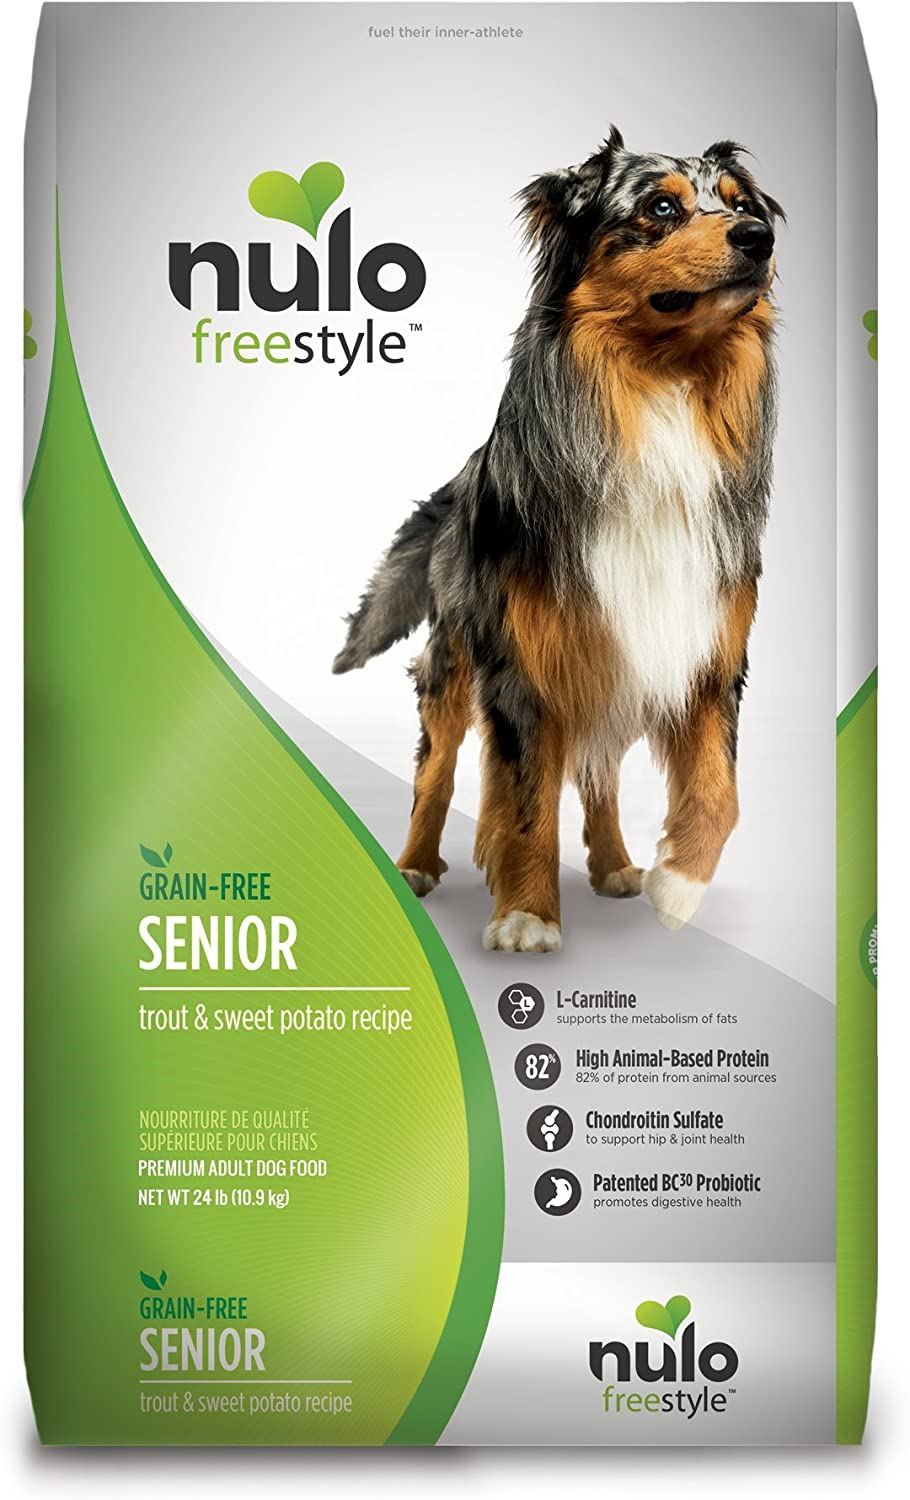 5. Nulo Freestyle Grain-Free Senior Dry Dog Food